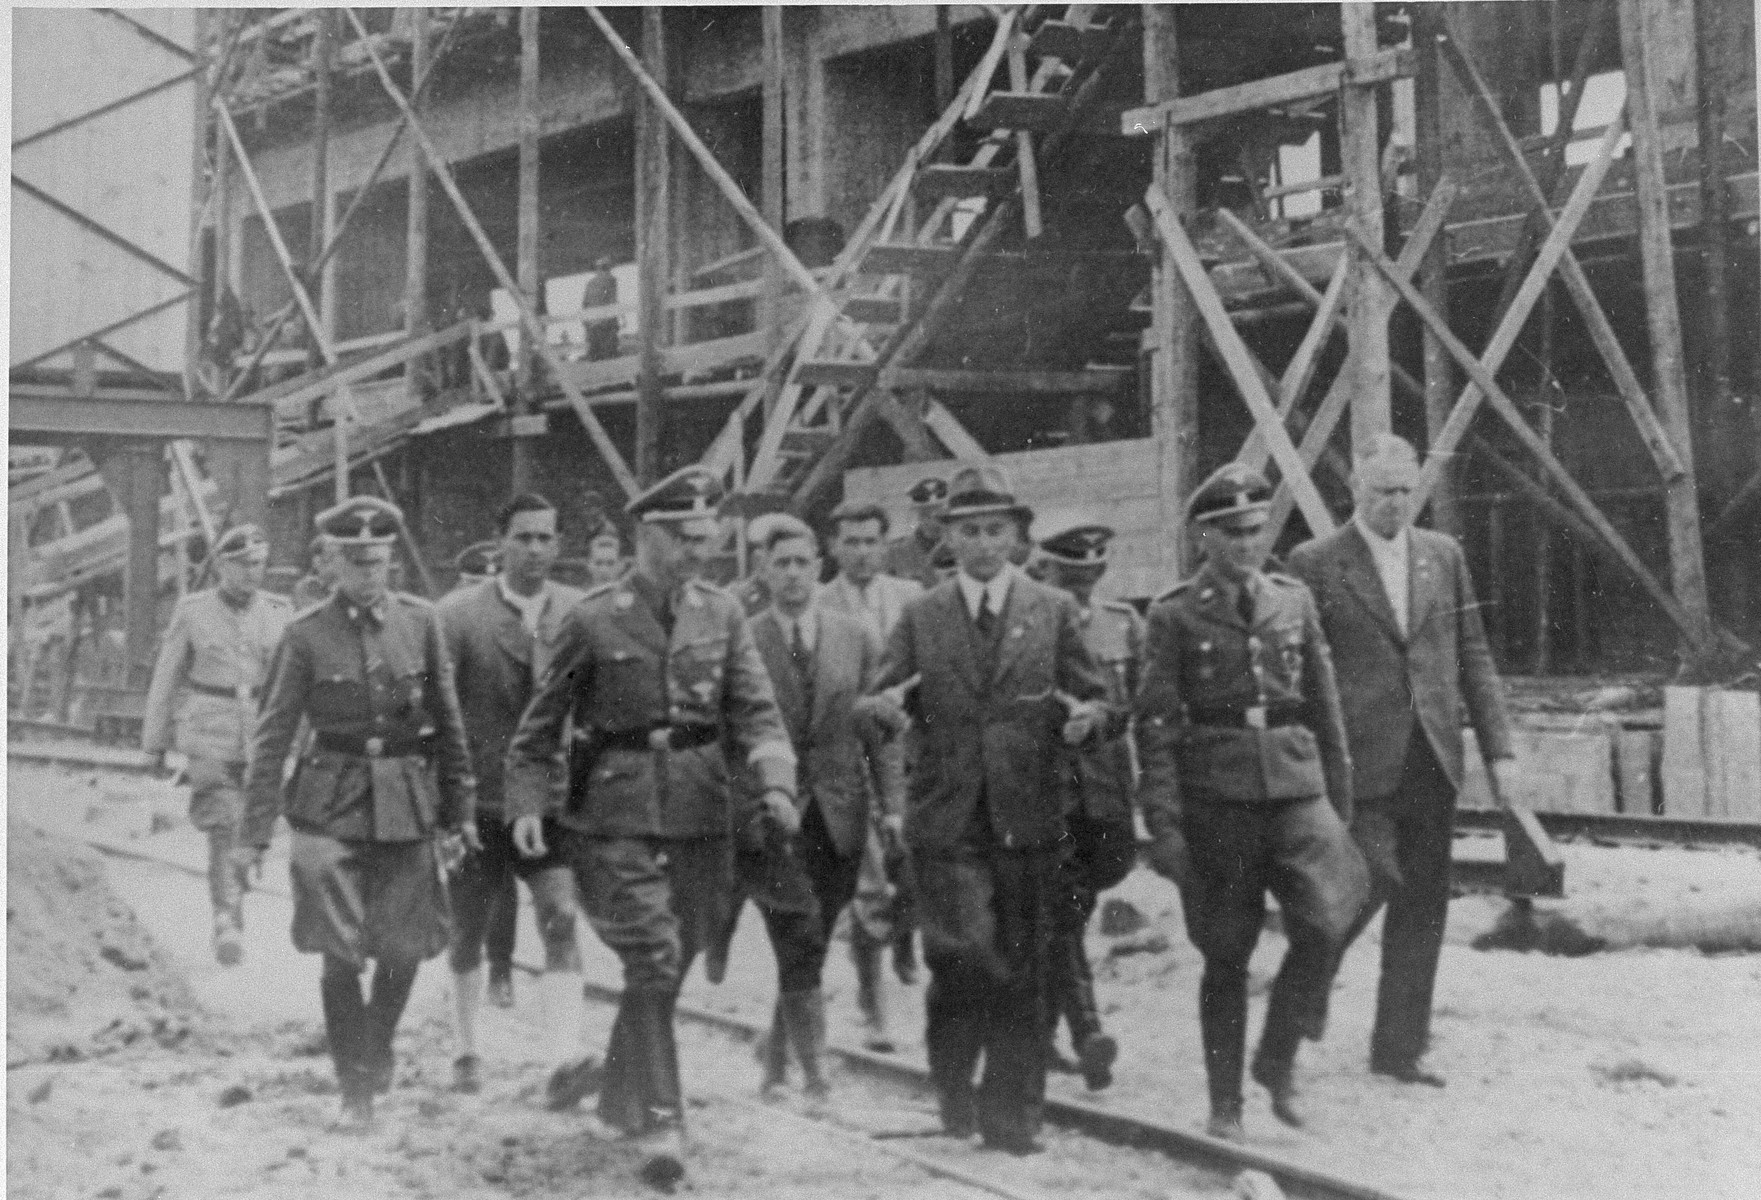 Reichsfuehrer SS Heinrich Himmler tours the Monowitz-Buna building site in the company of SS officers and IG Farben engineers.   Among those pictured are: Rudolf Brandt (left, in SS uniform slightly behind Himmler), Heinrich Himmler, Max Faust (wearing the fedora) and Rudolf Hoess (next to Faust).  Faust, who was an IG Farben engineer, was the head of building operations at Monowitz-Buna.